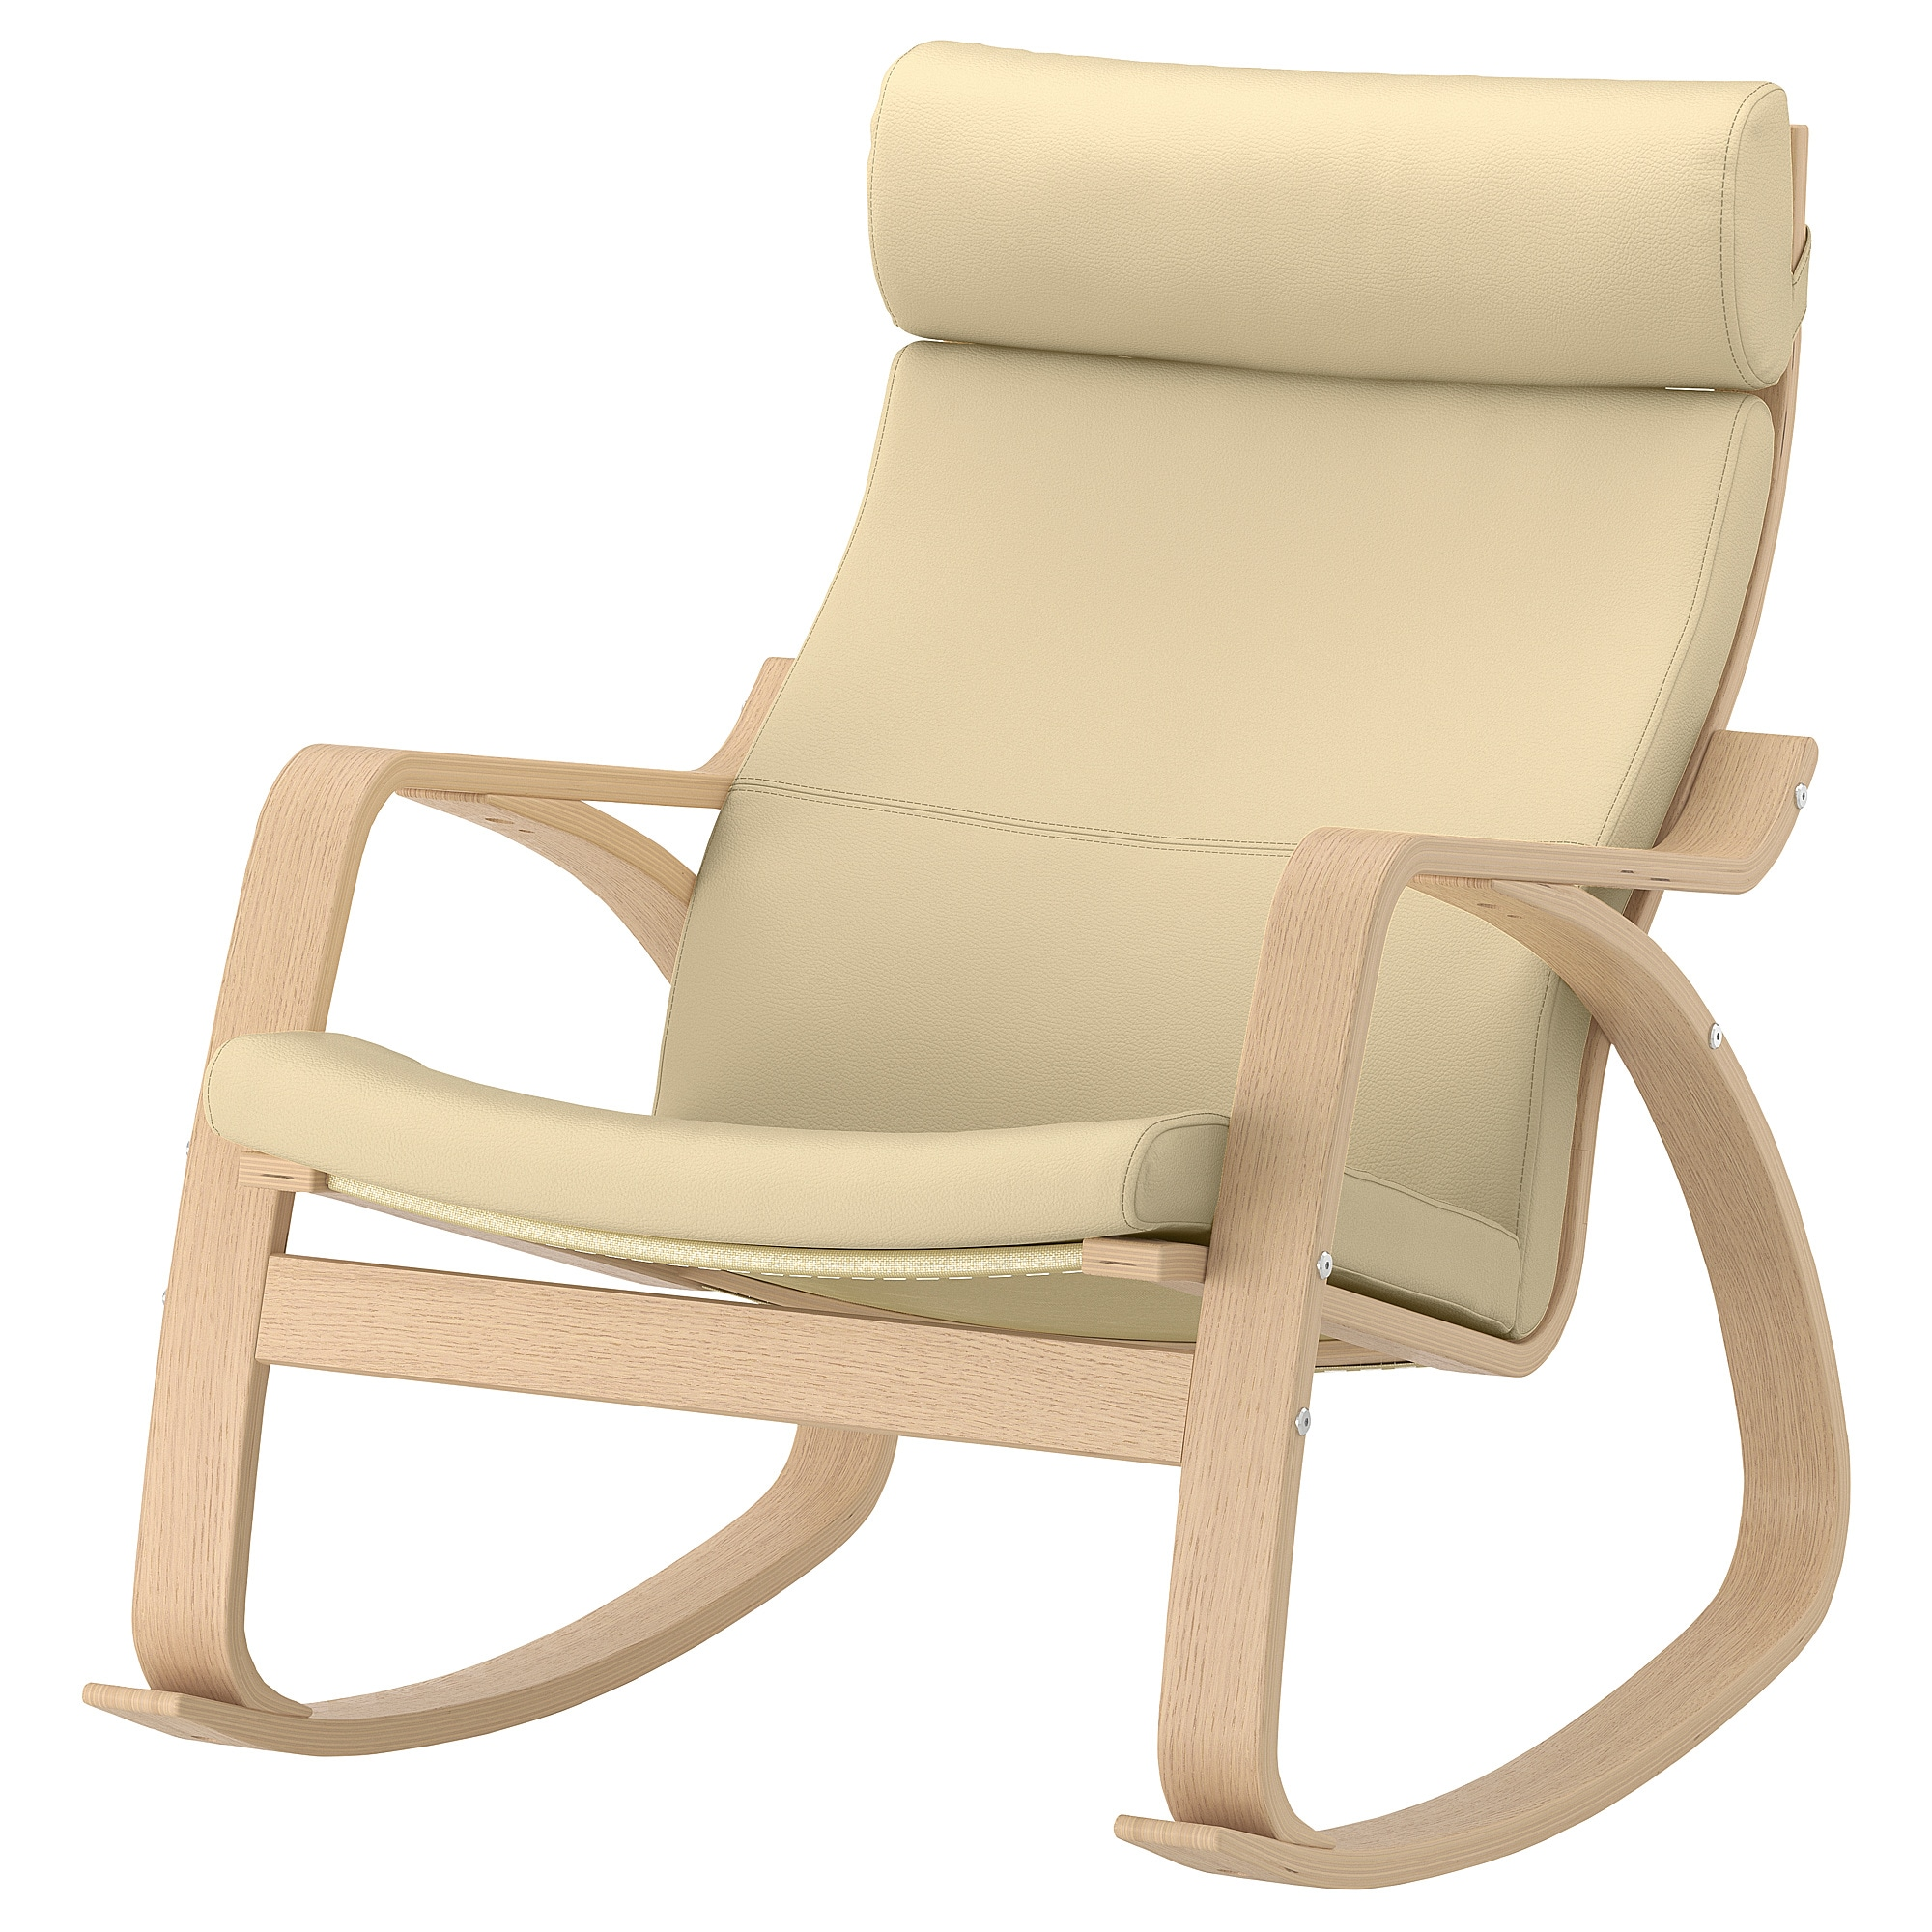 Eggshell Chair Rocking Chair PoÄng White Stained Oak Veneer Glose Eggshell